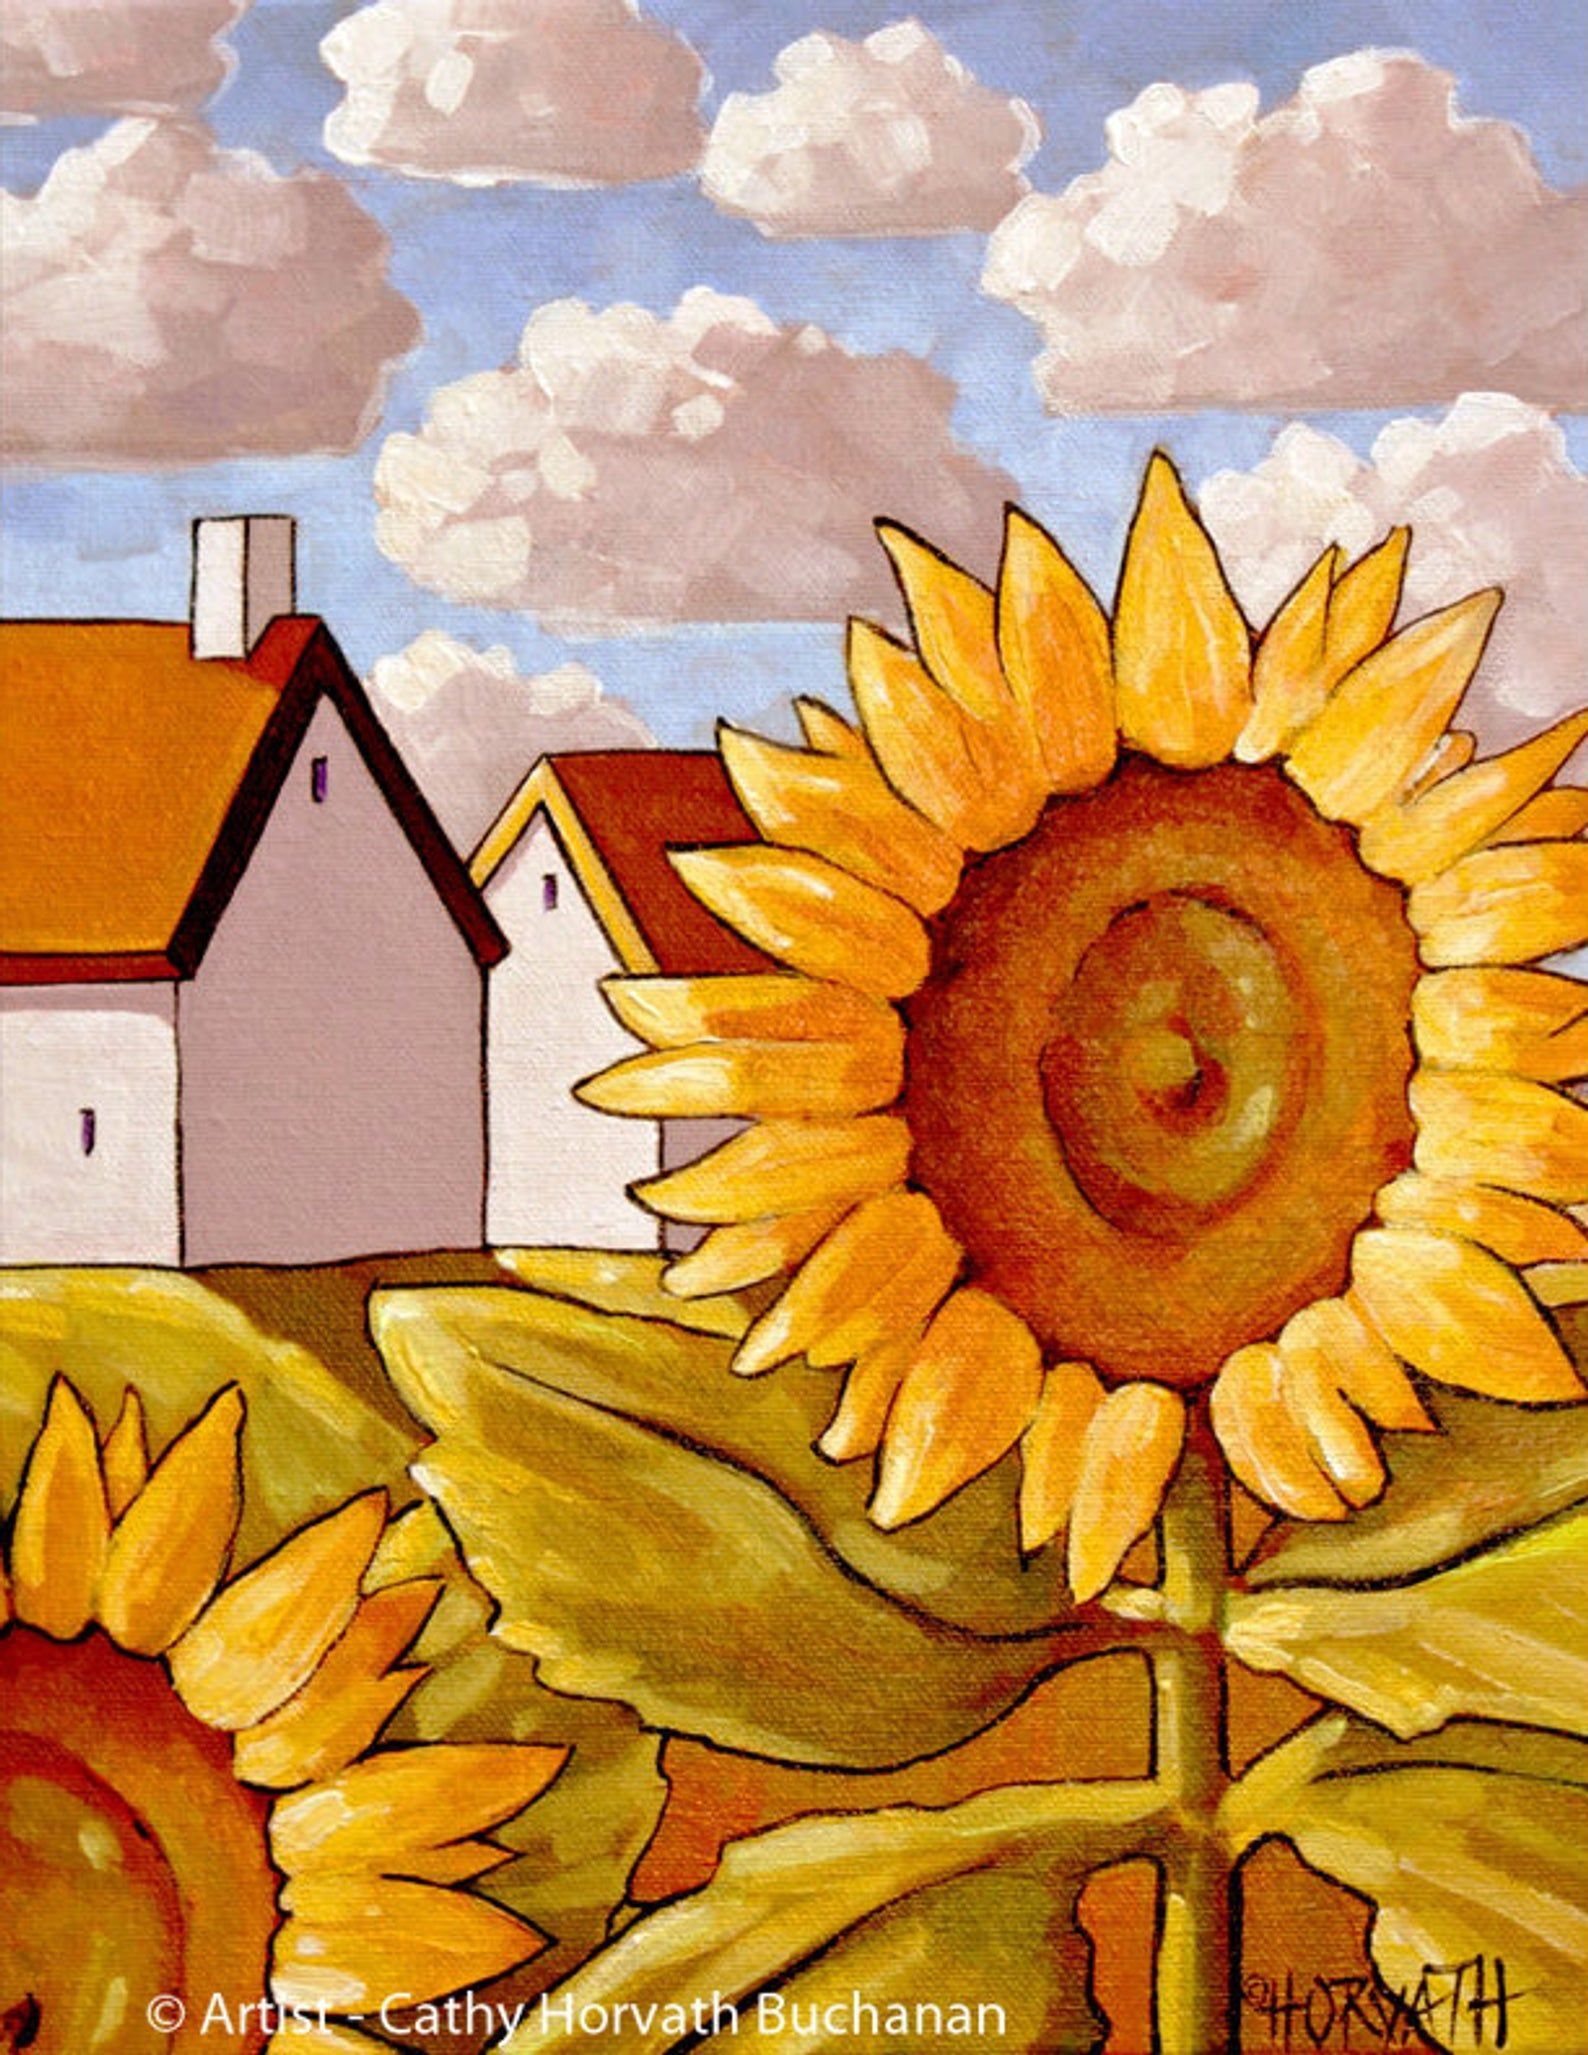 Sunflower View 5x7 Print Yellow Flowers Cottage Garden Summer Landscape Folk Art Print Home Decor Gift Floral Giclee By Cathy Horvath Country Art Art Art Prints